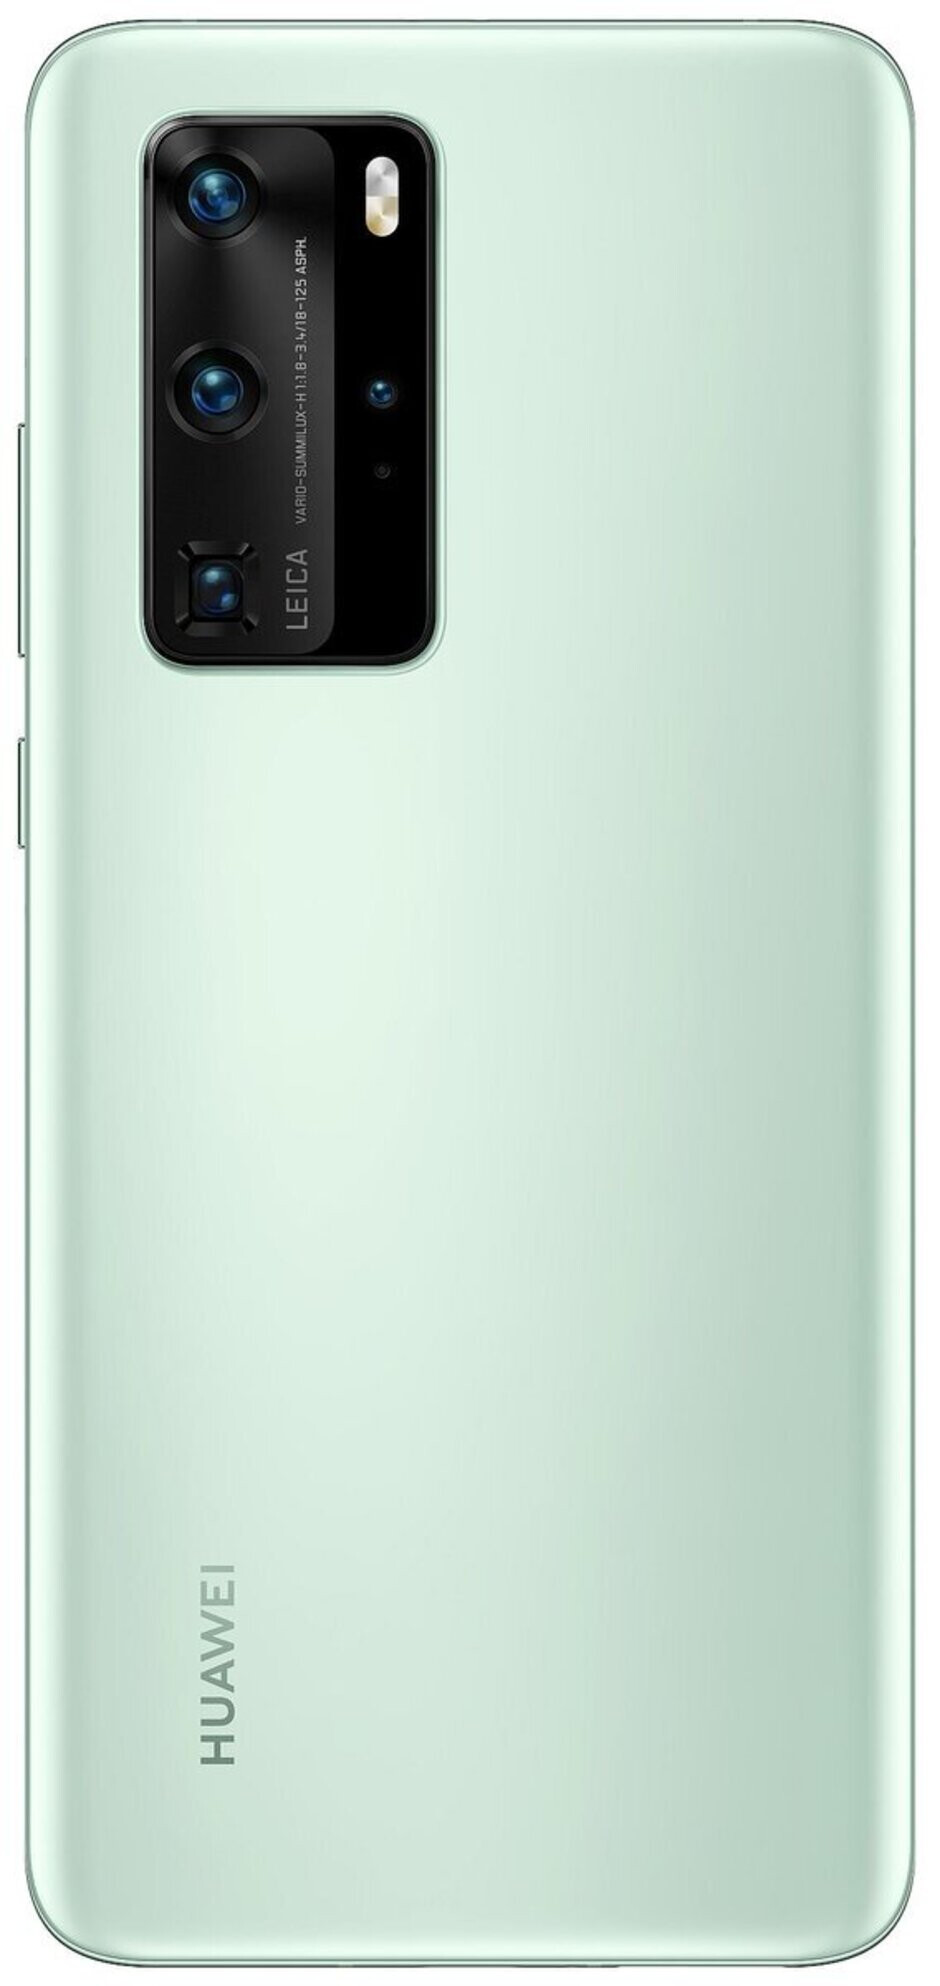 Huawei P40 Pro in mint green - Take a look at the Huawei P40 Pro in mint green